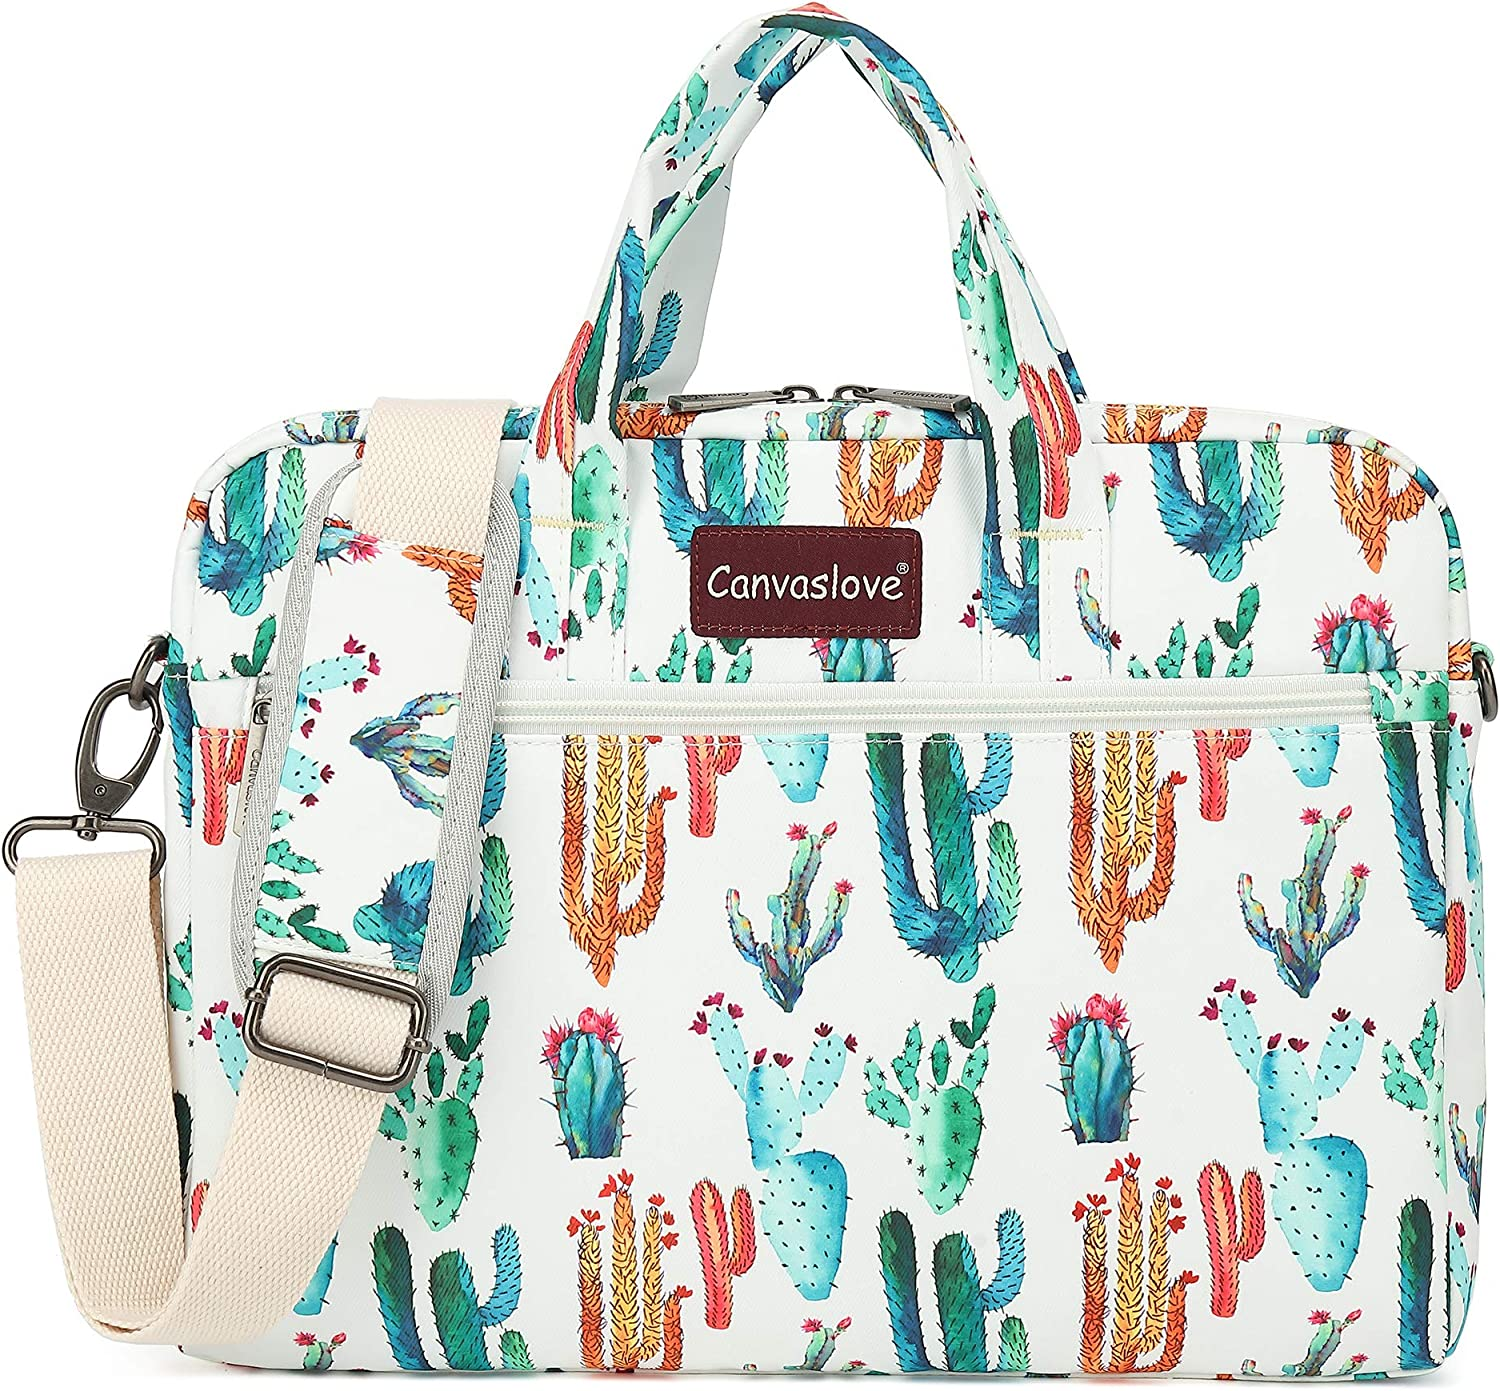 Canvaslove Laptop Shoulder Bag With Rebound Bubble Protection (11 inch-13 inch, Cactus)